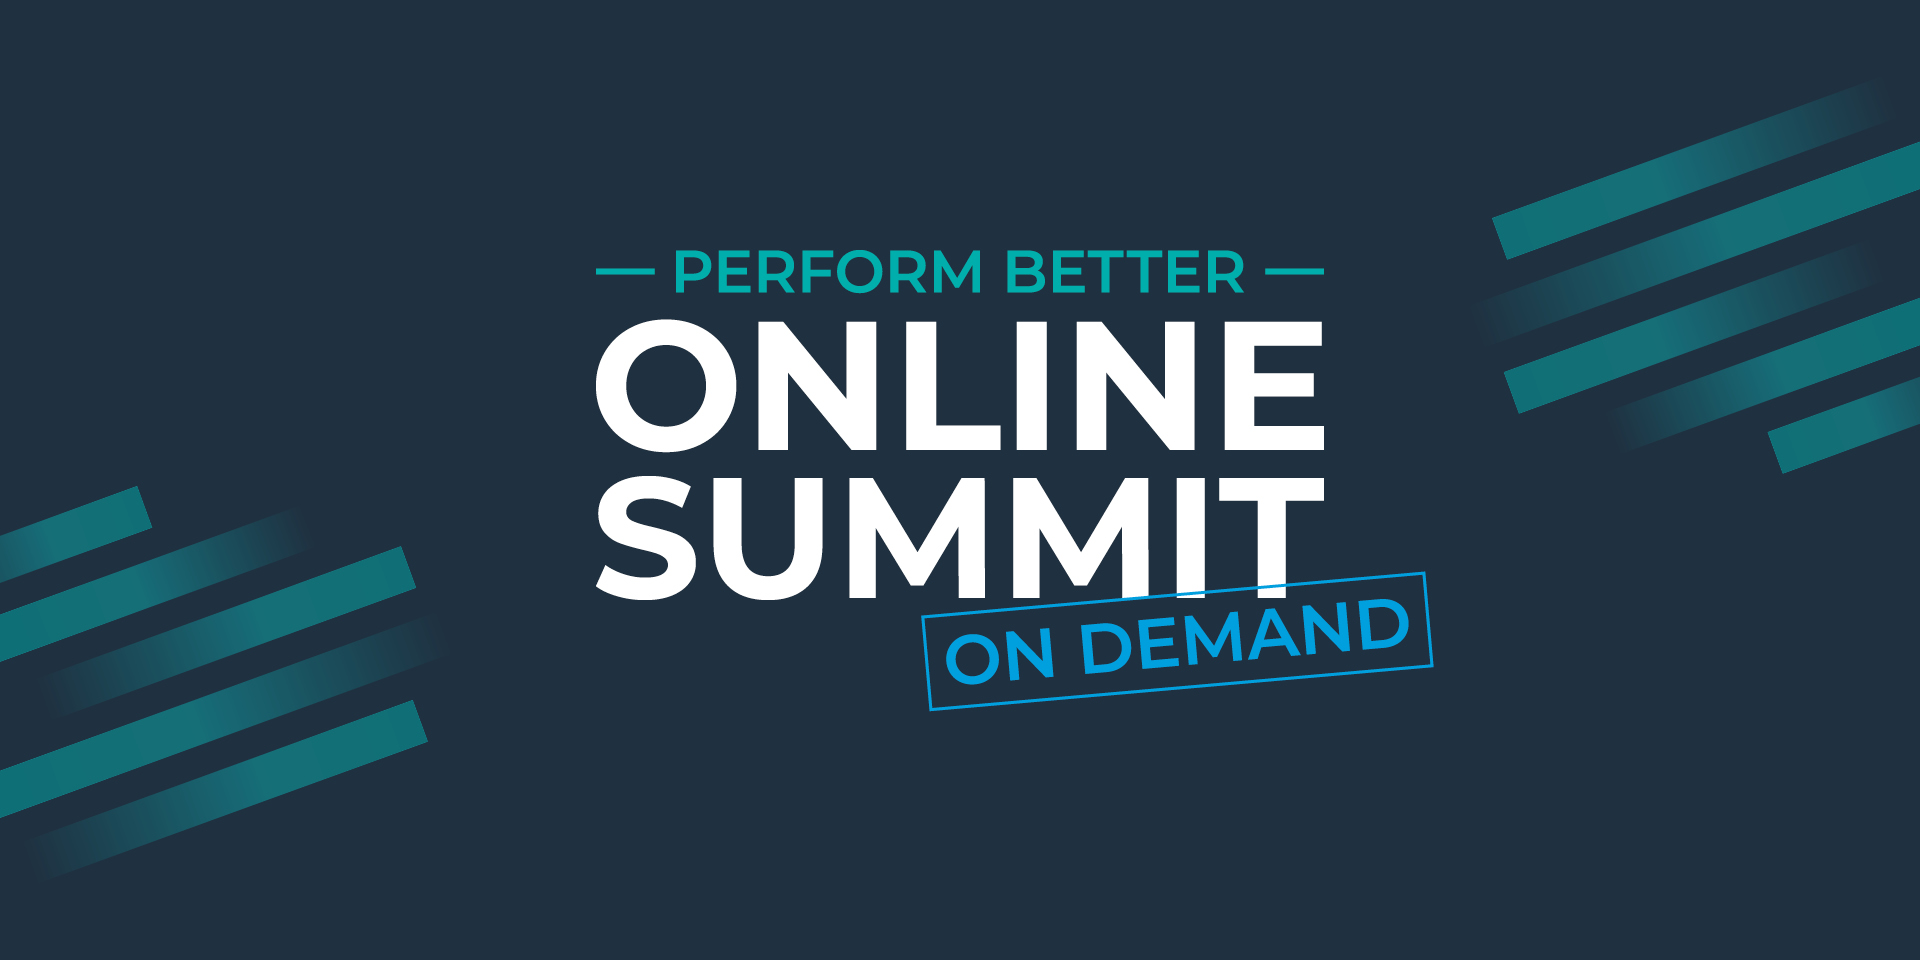 PERFORM BETTER Online Summit